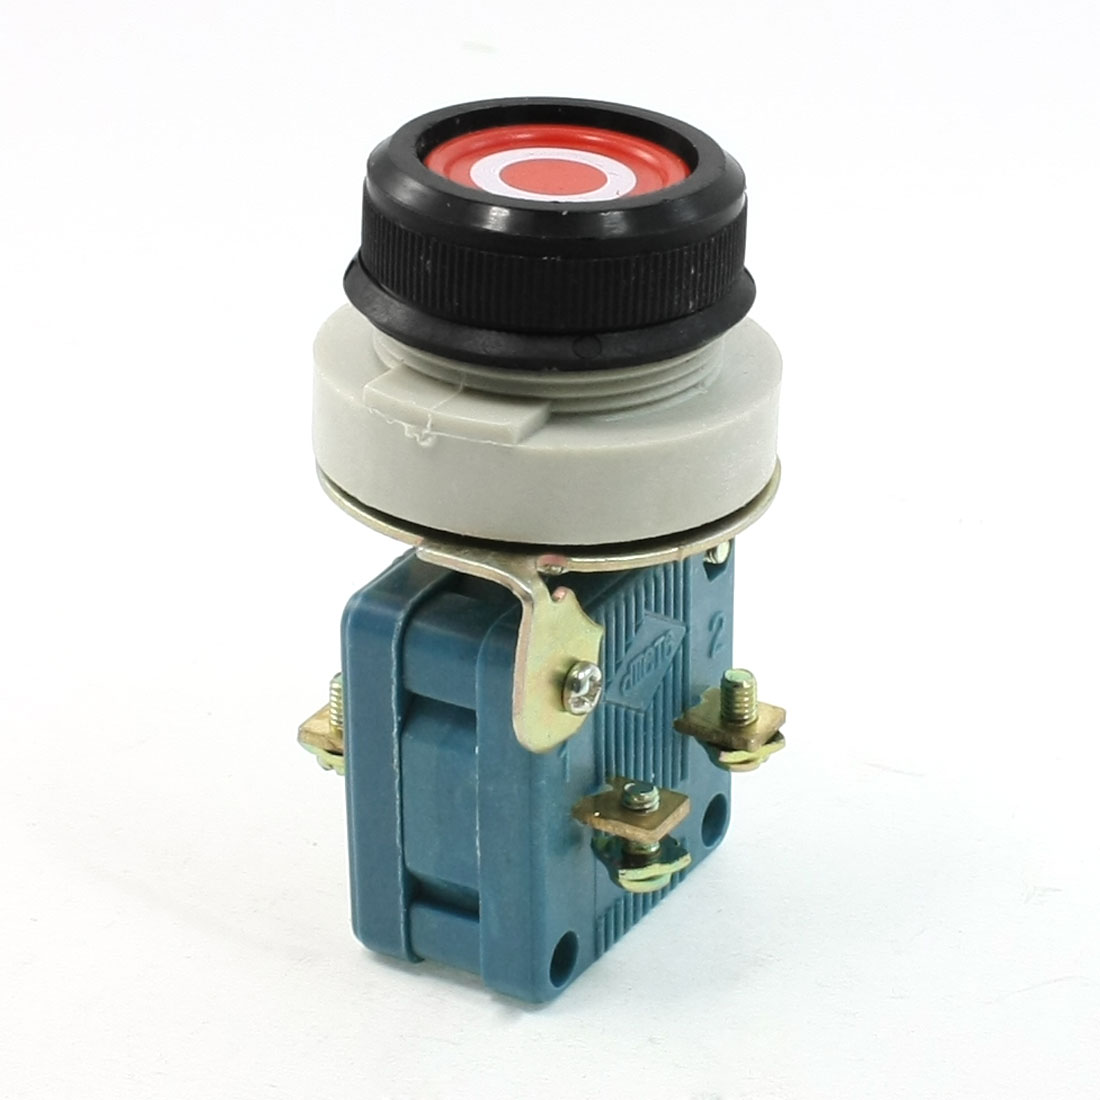 AC 380V 10A 1NO 1NC DPST Momentary Flat Round Push Button Switch